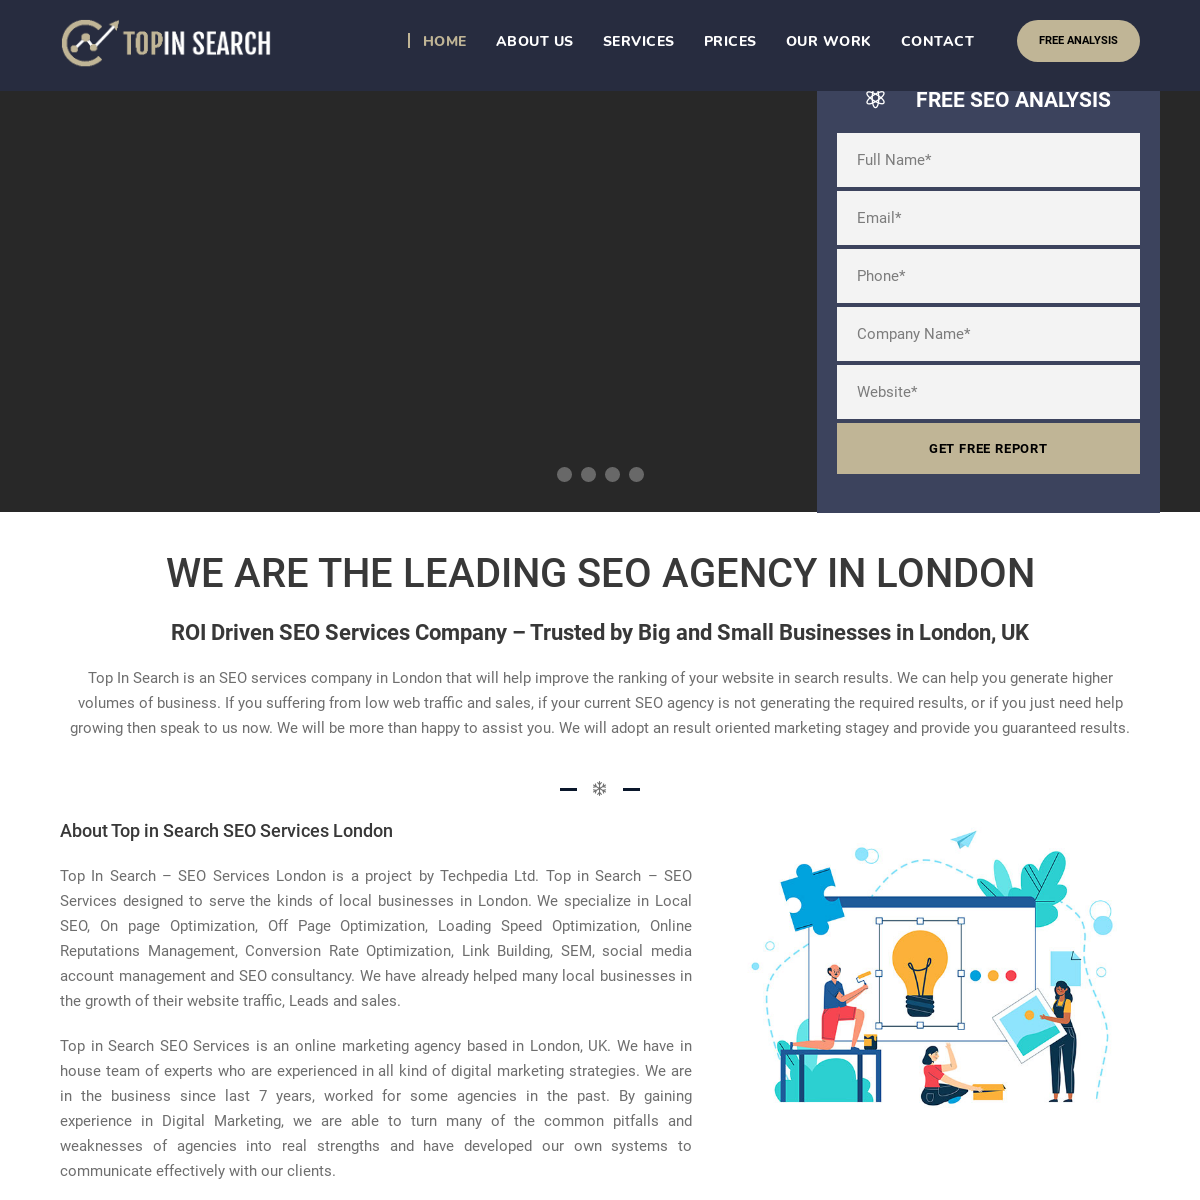 SEO Agency London - Best Local SEO Company - Cheap SEO Services